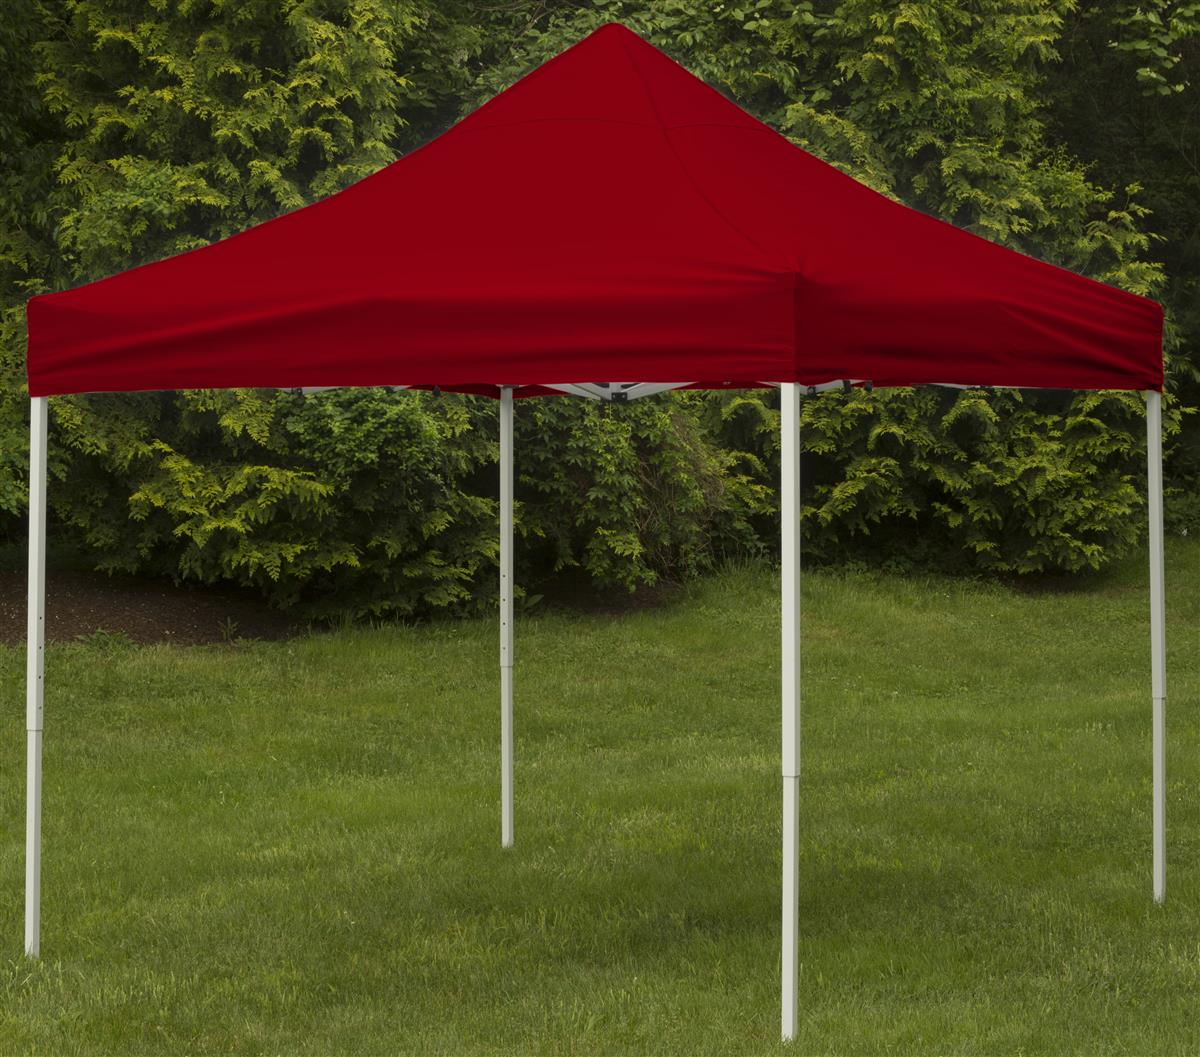 10' x 10' Outdoor Canopy Tent, Pop Up, Portable, Square – Red